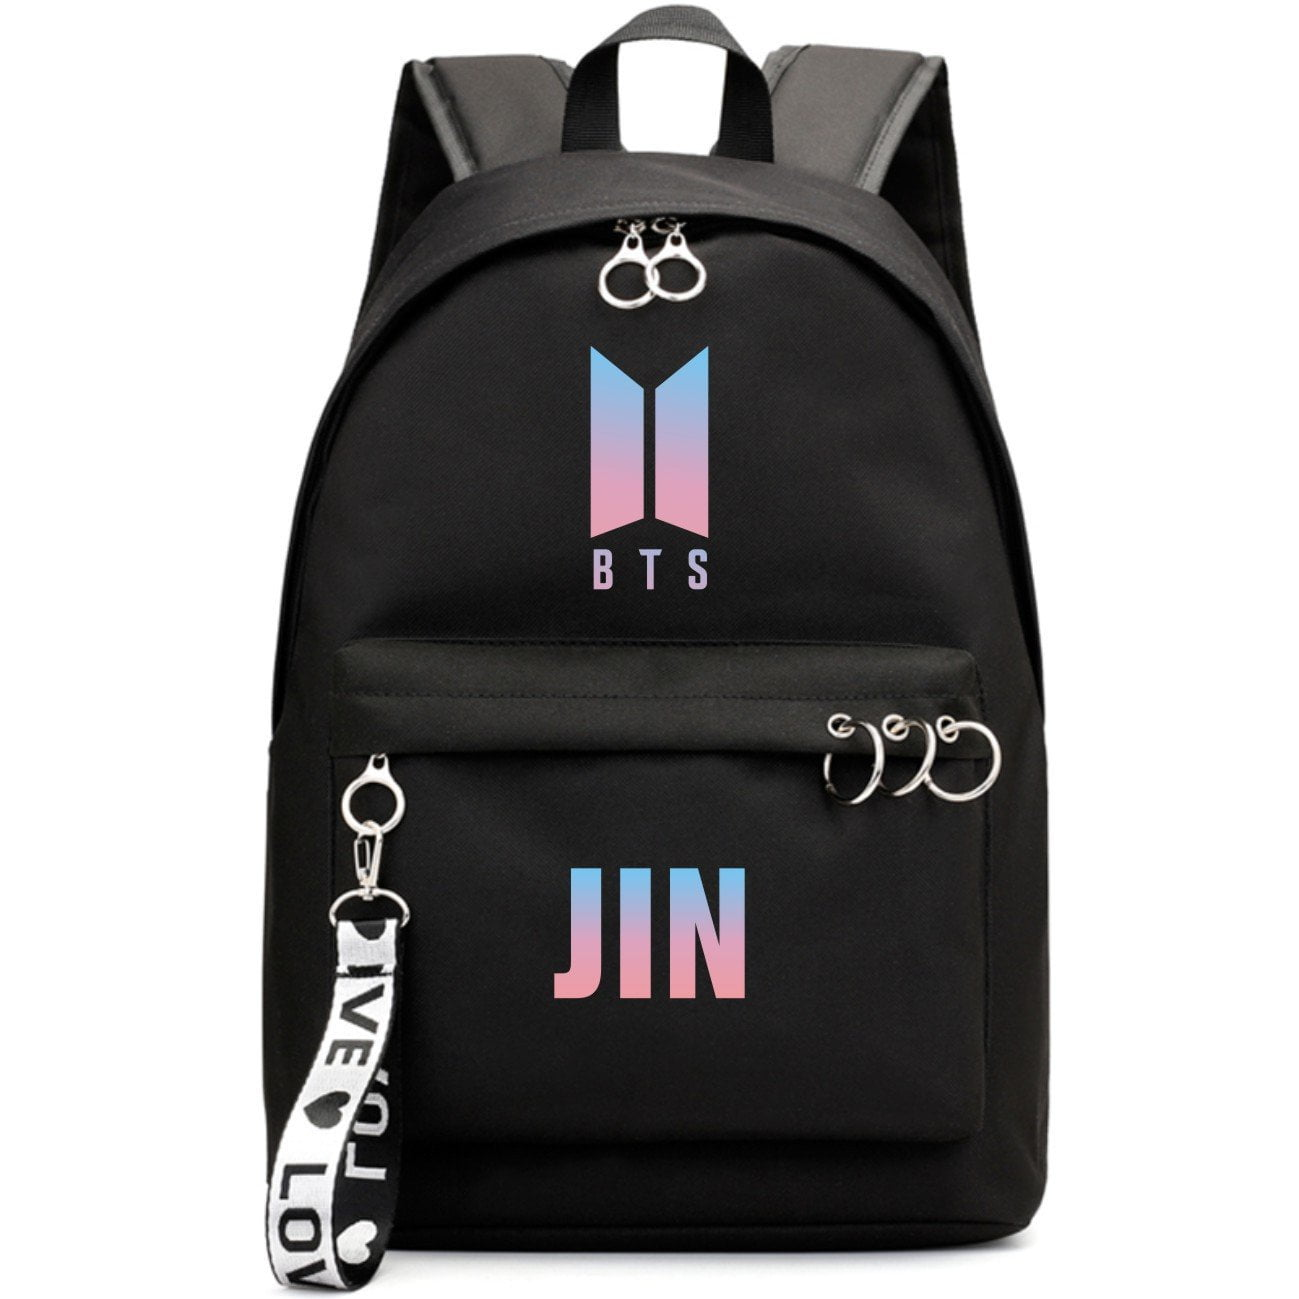 BTS New Logo Large Capacity Backpack / School Bag with Silver Rings in 2 Colours  583071224455#3925845045041